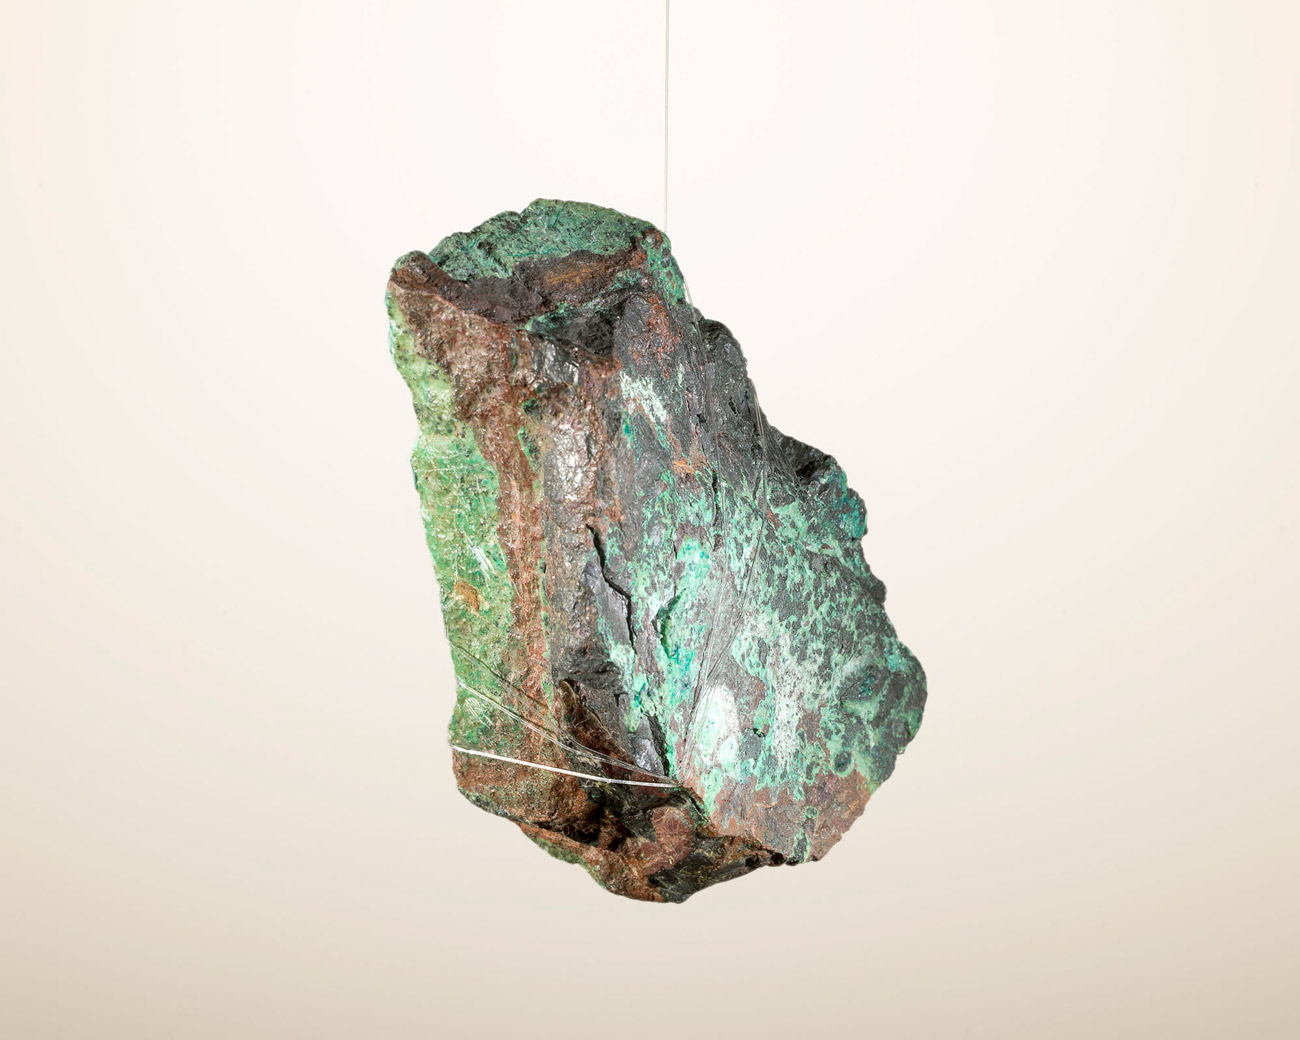 Copper ore hanging with a fishing wire. From 'Metallic Threads' (from 'Copper Geographies'), Brighton, 2015 © Ignacio Acosta